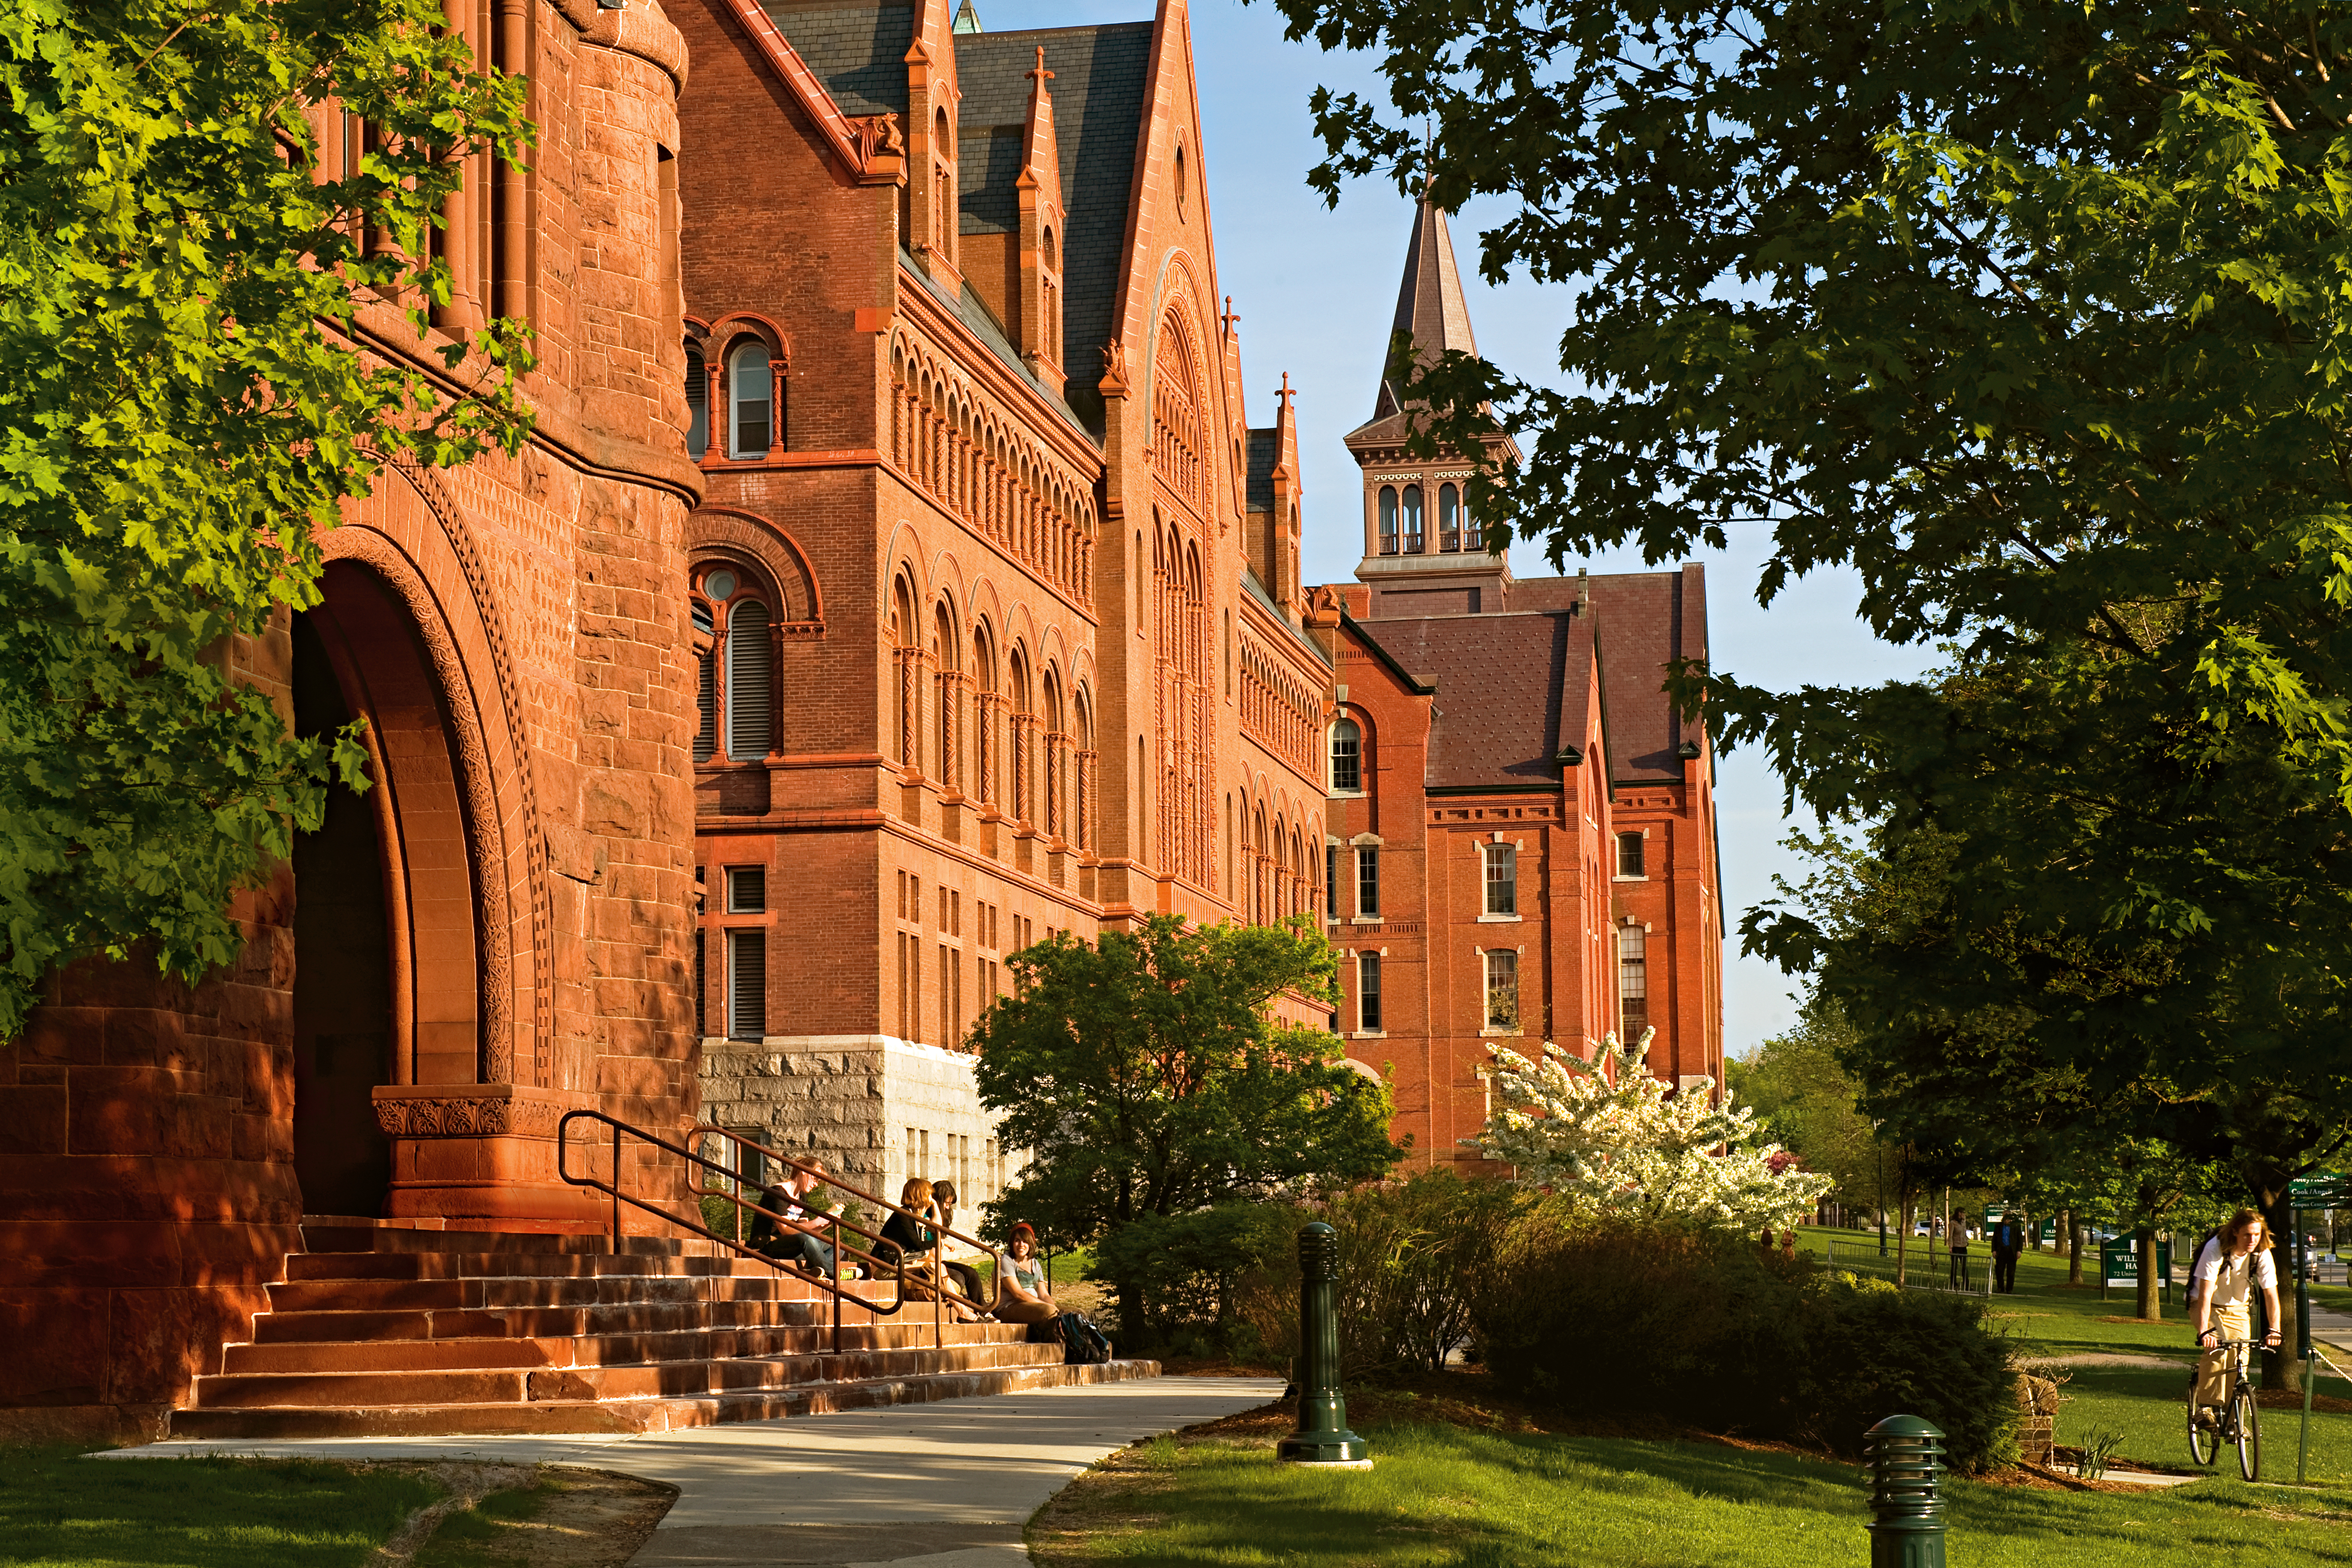 170815-merit-colleges-by-state-university-of-vermont